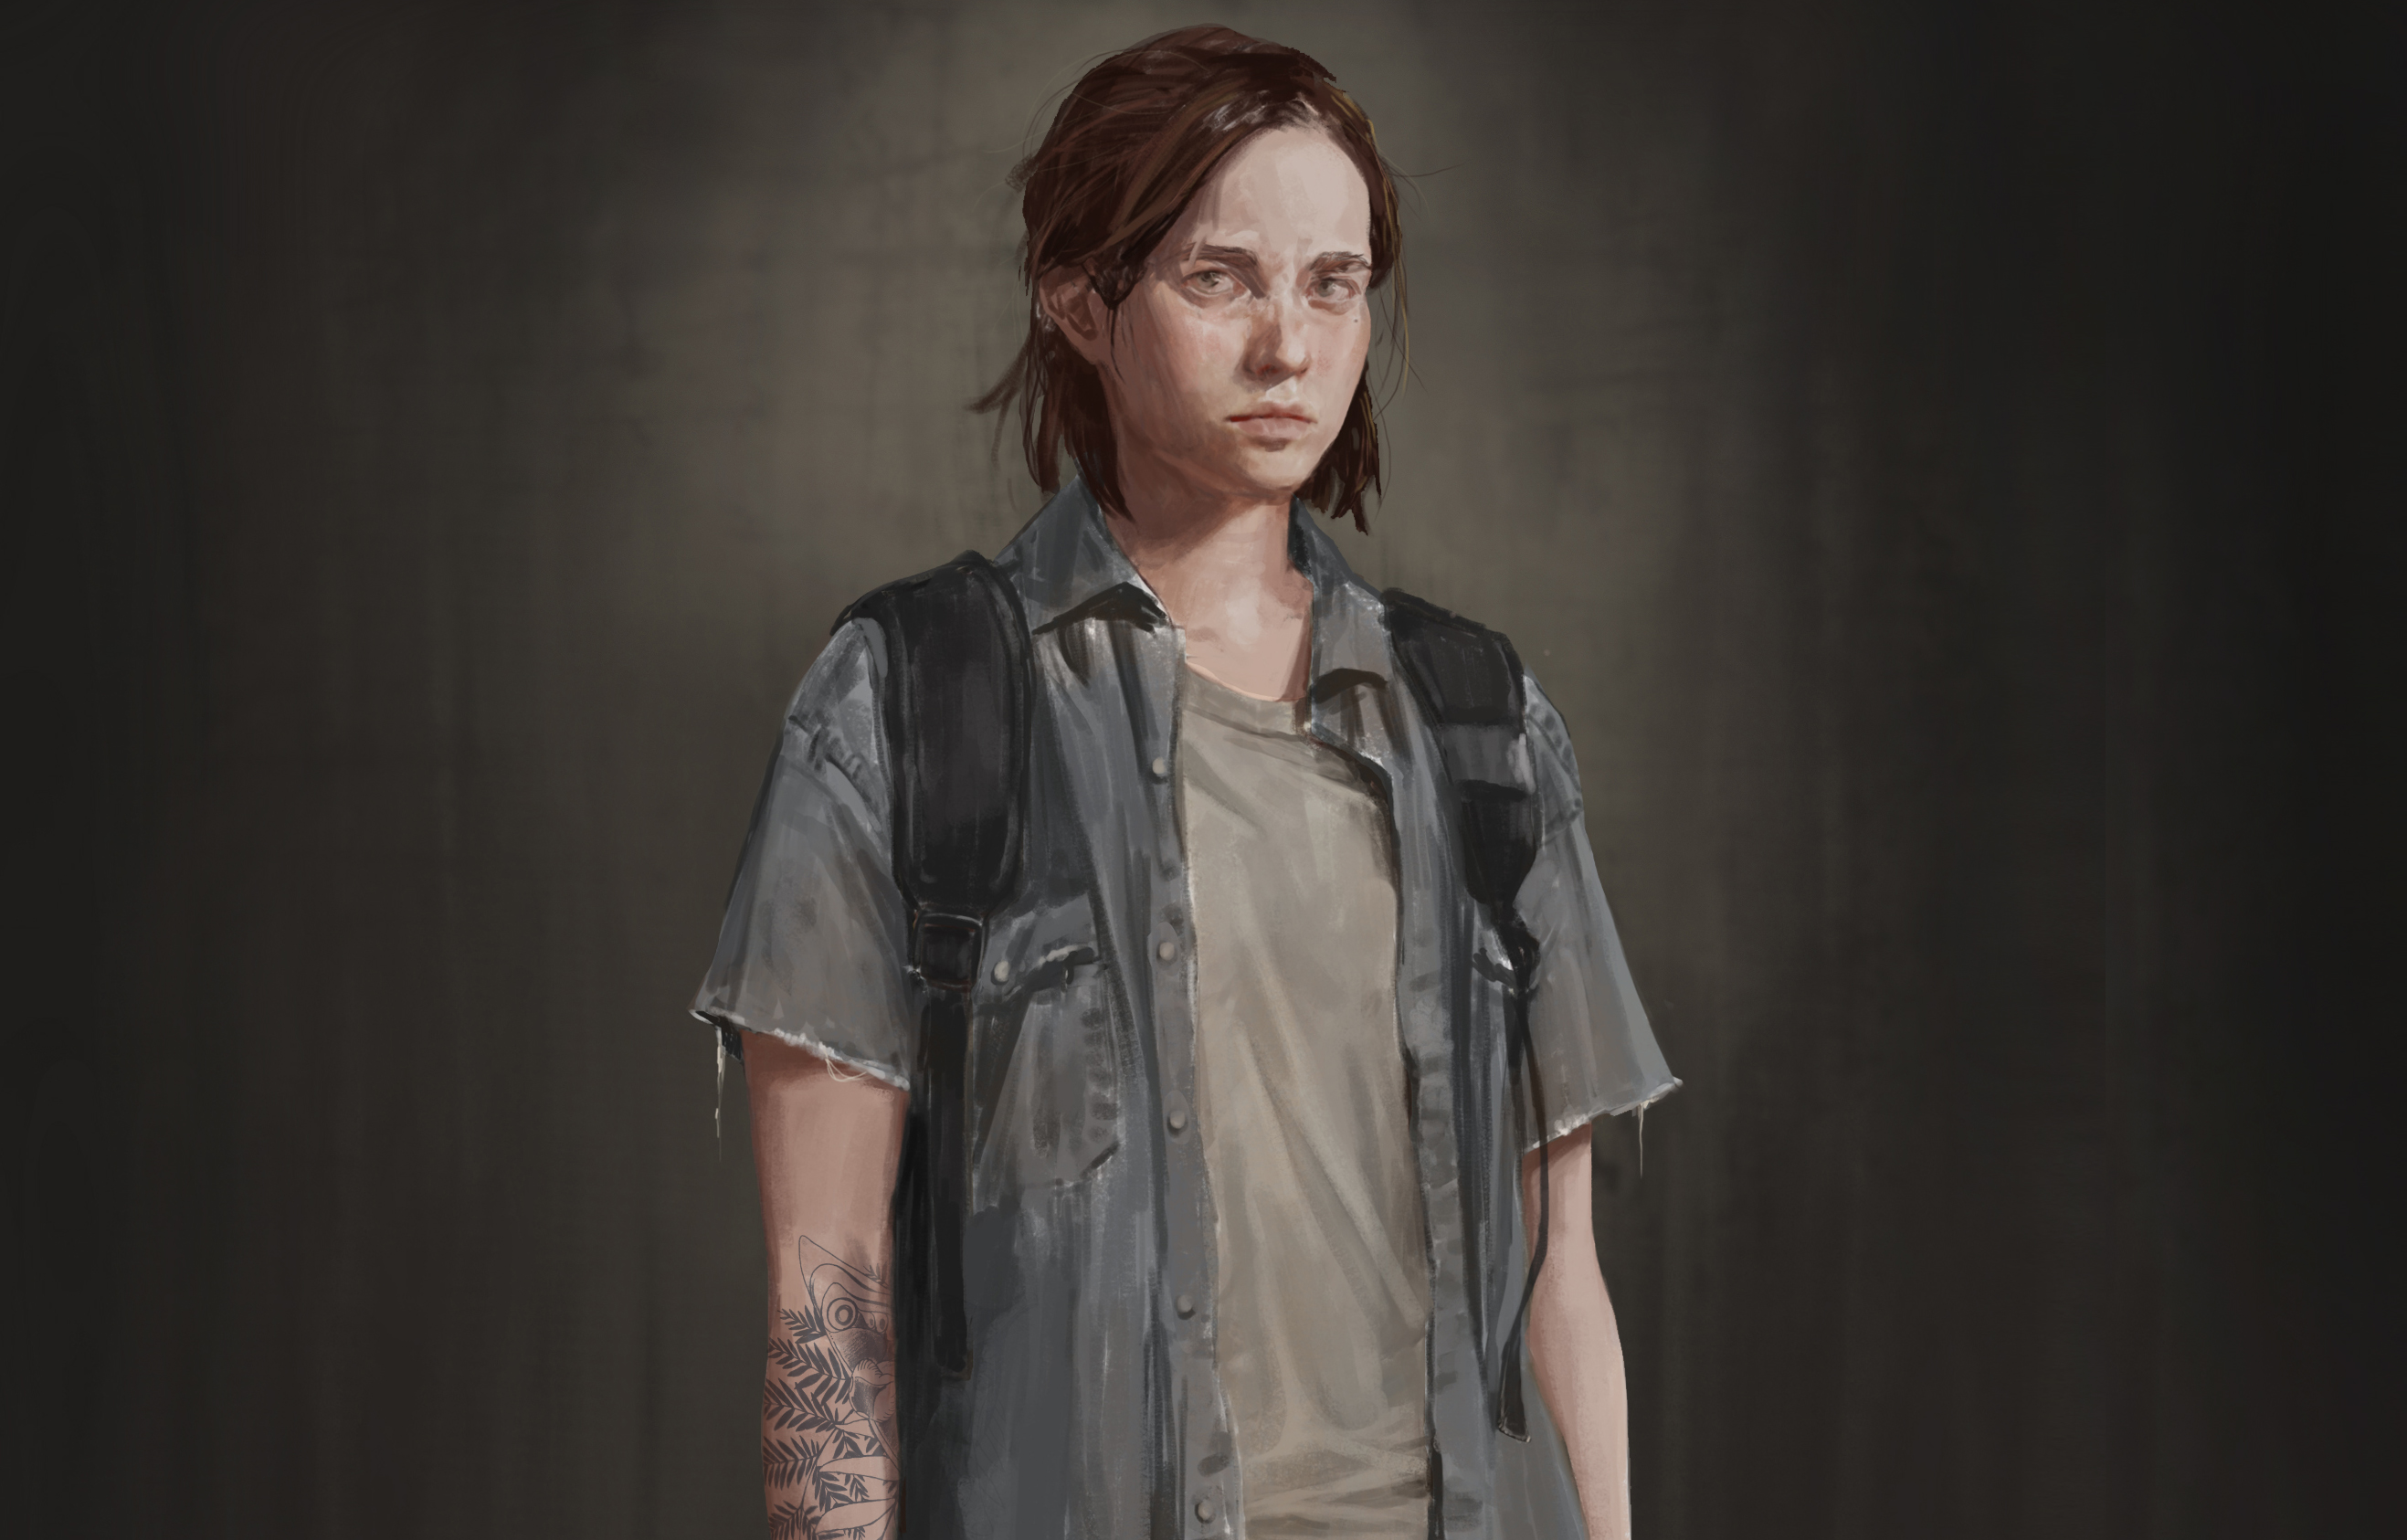 60 The Last Of Us Part Ii Hd Wallpapers Background Images